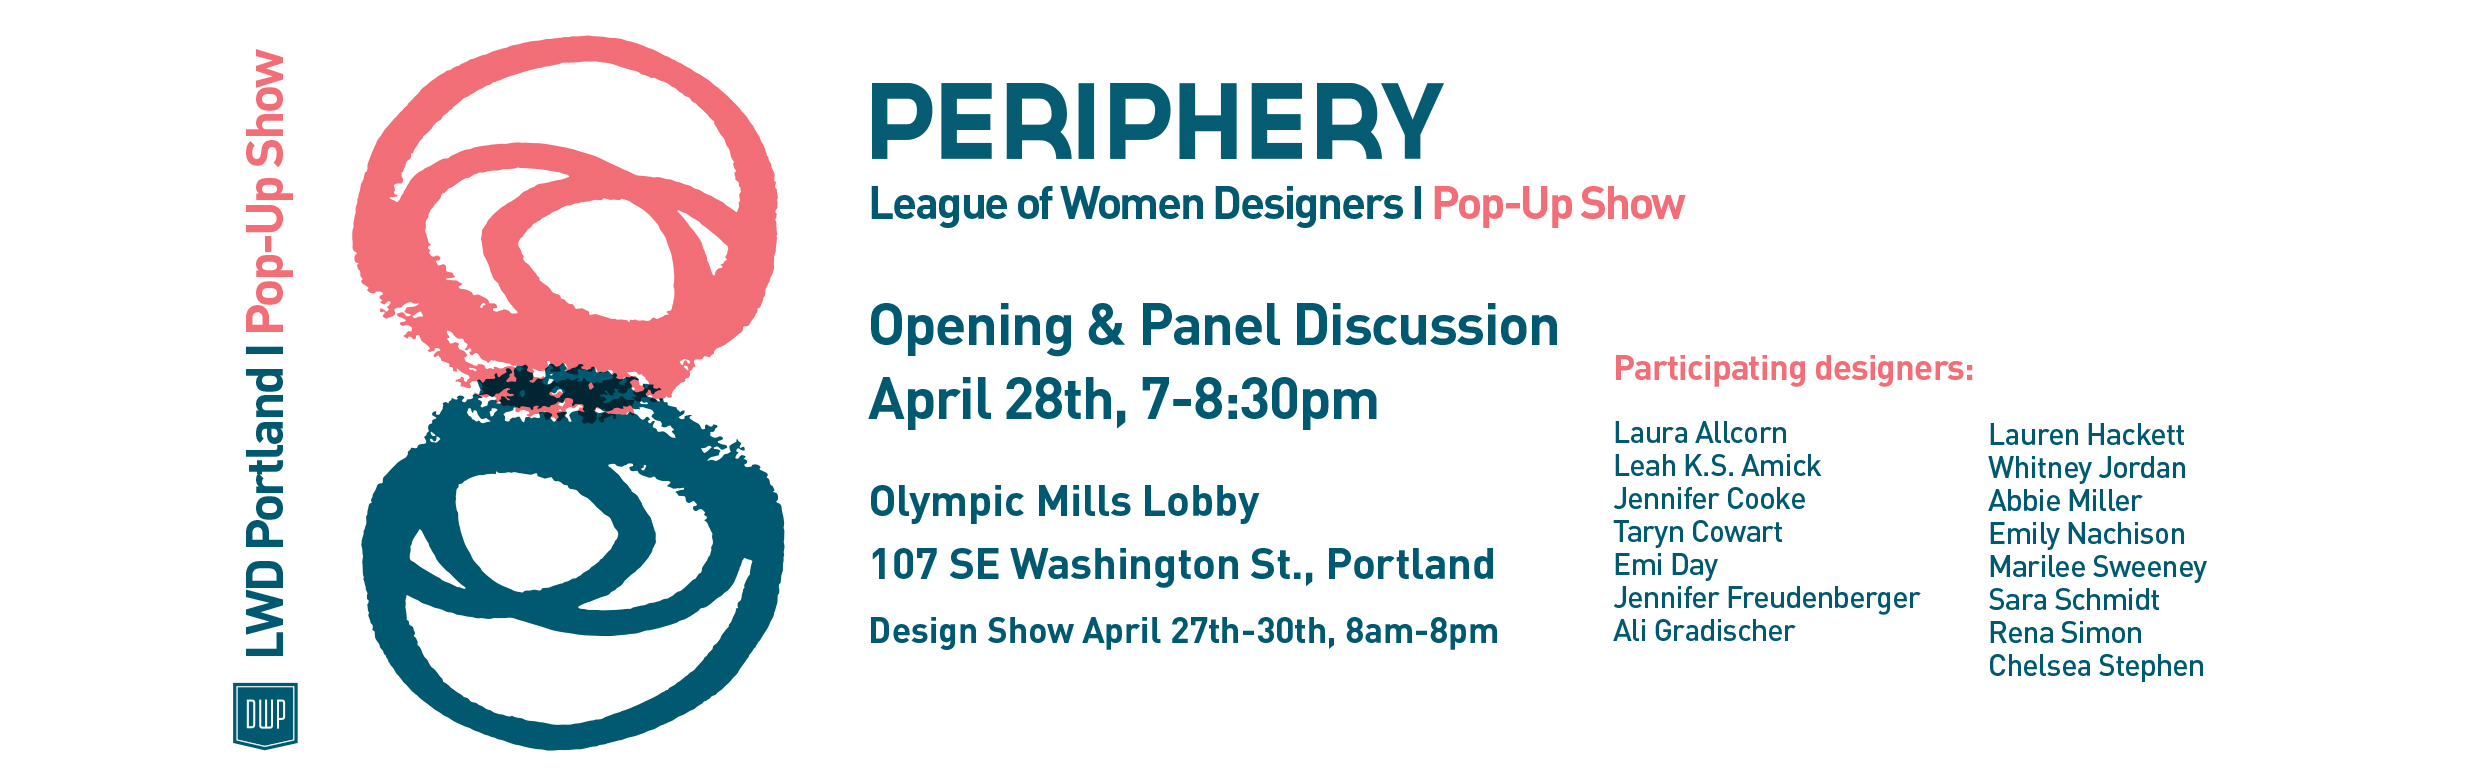 Periphery designers at League of Women Designers Portland's Pop-Up Show